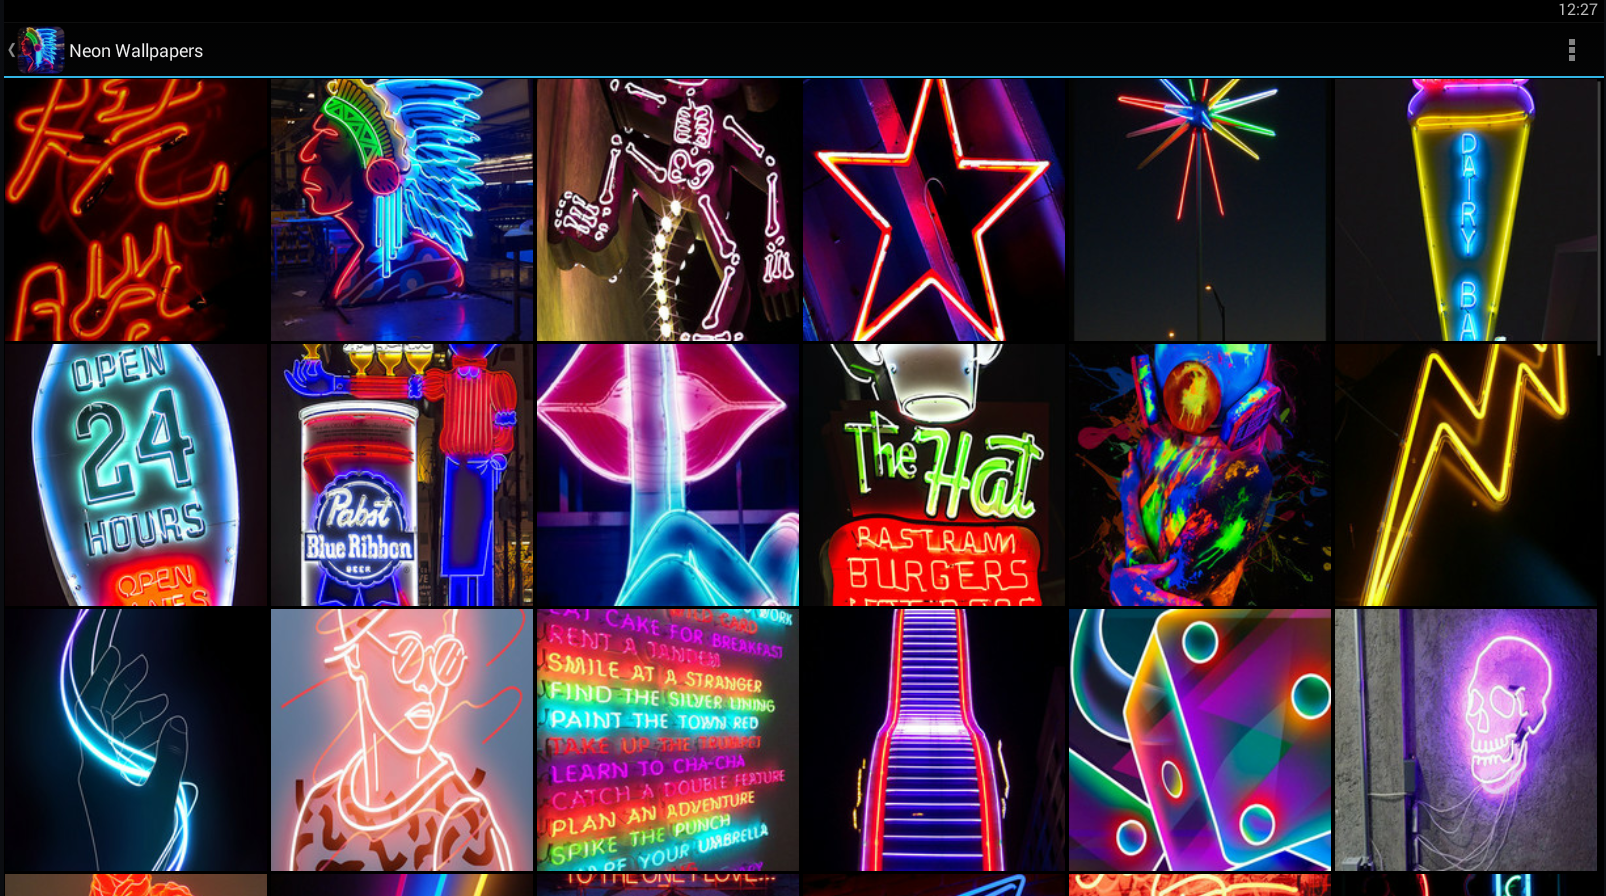 Neon Wallpapers Android Apps on Google Play